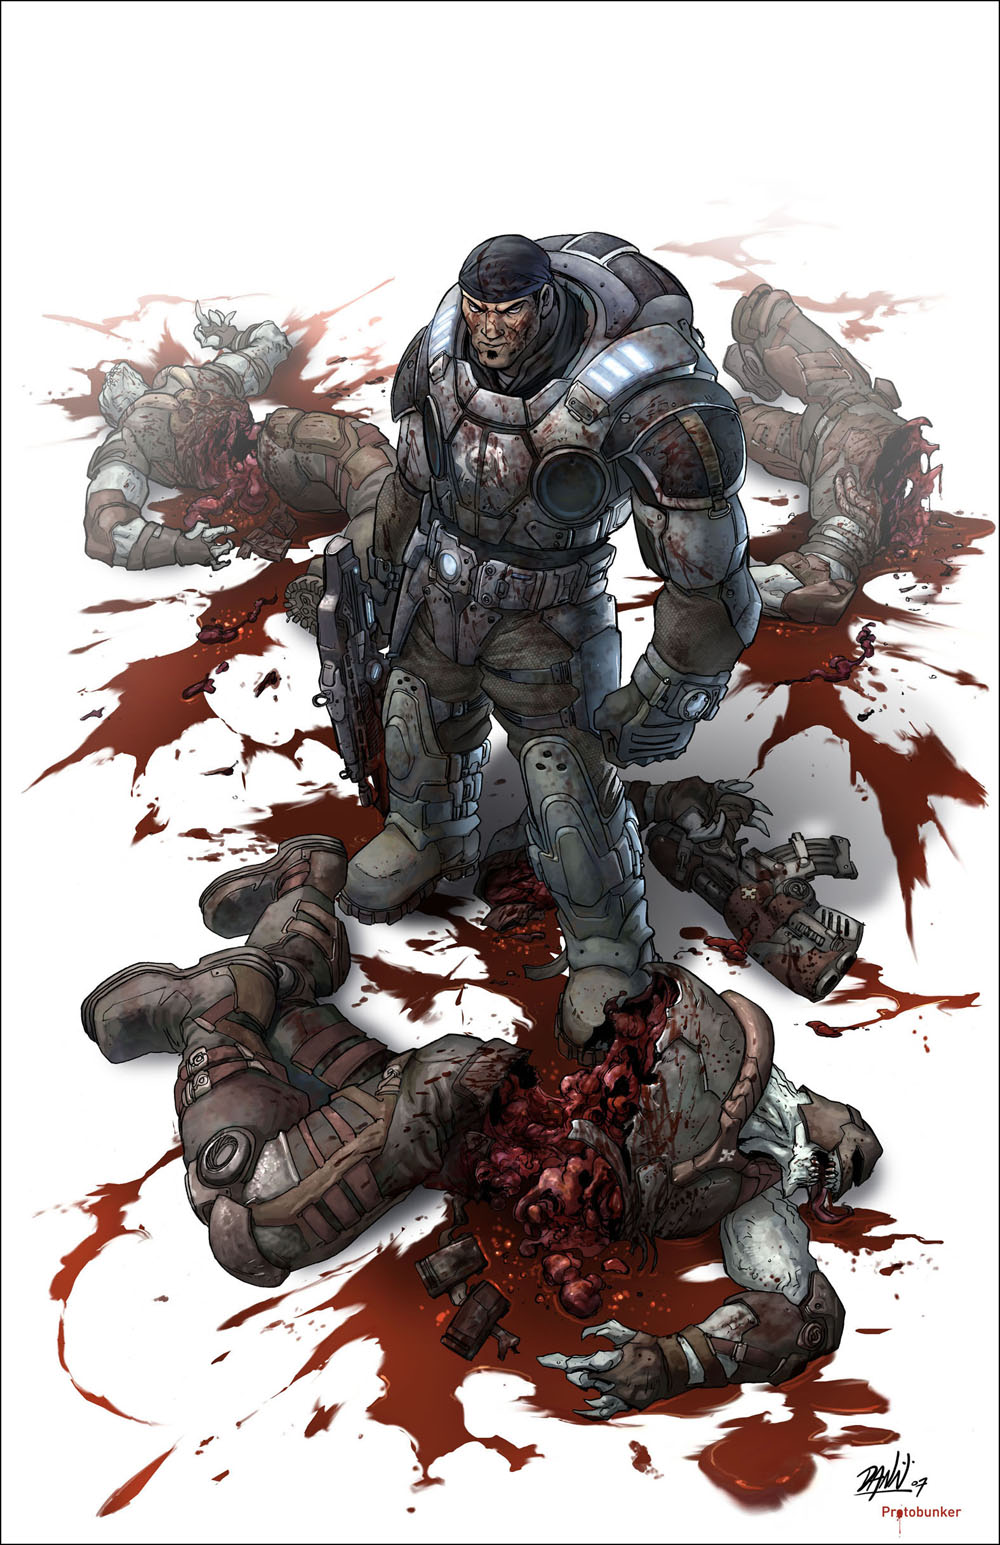 Drawn wars gears war 3 To more of when 8